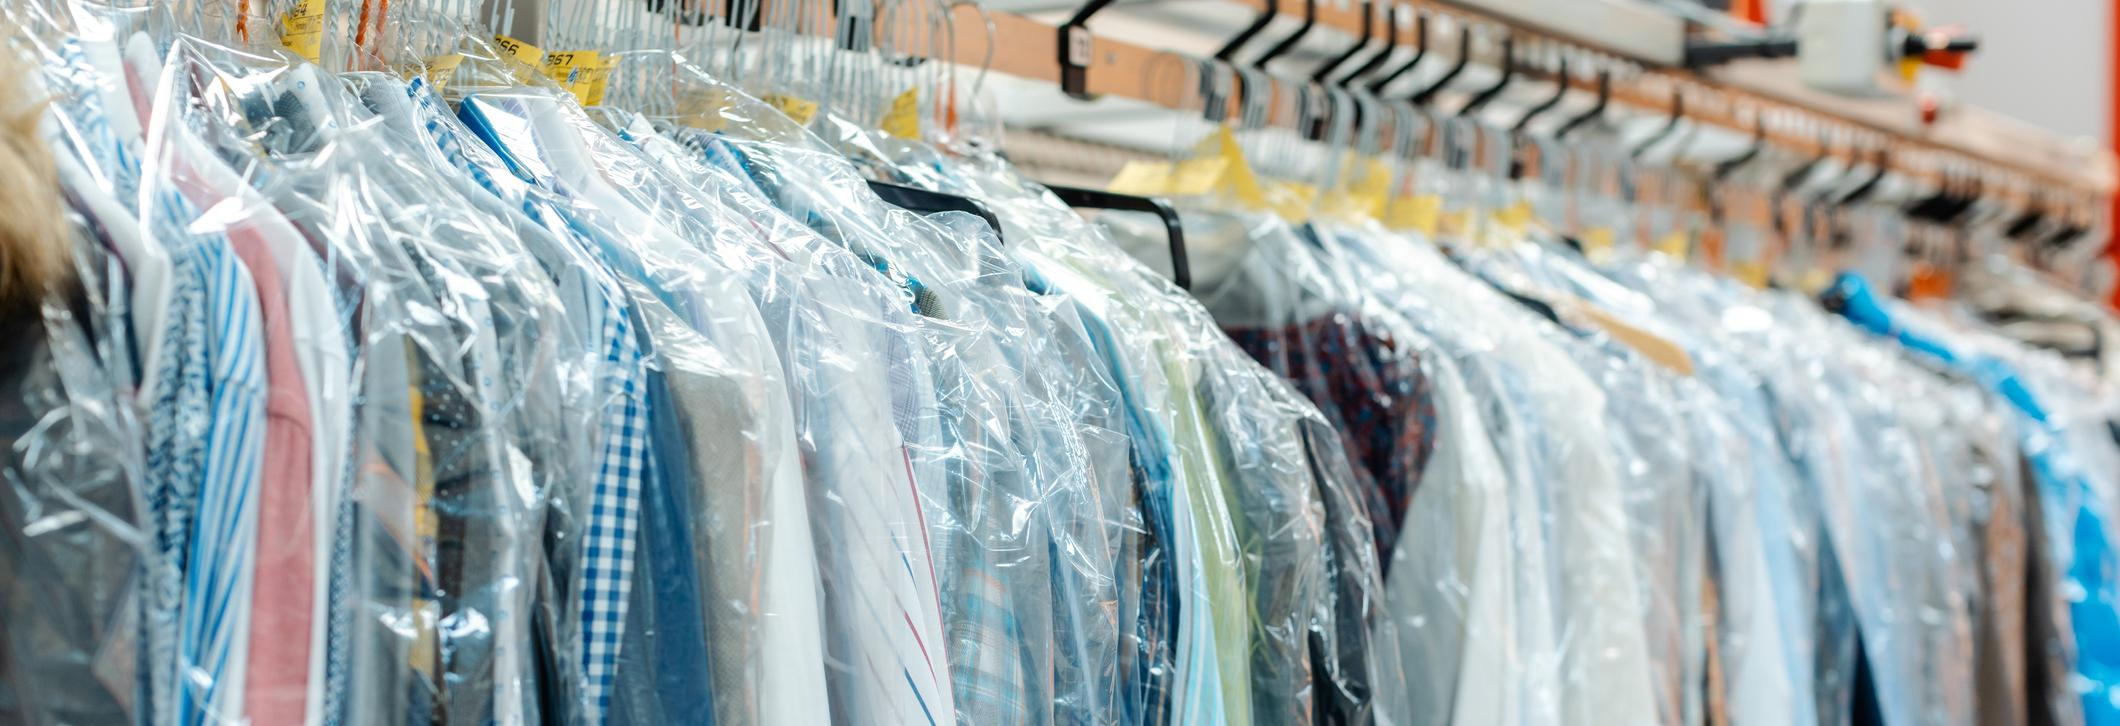 concord custom cleaners dry cleaning western hills ohio shirts